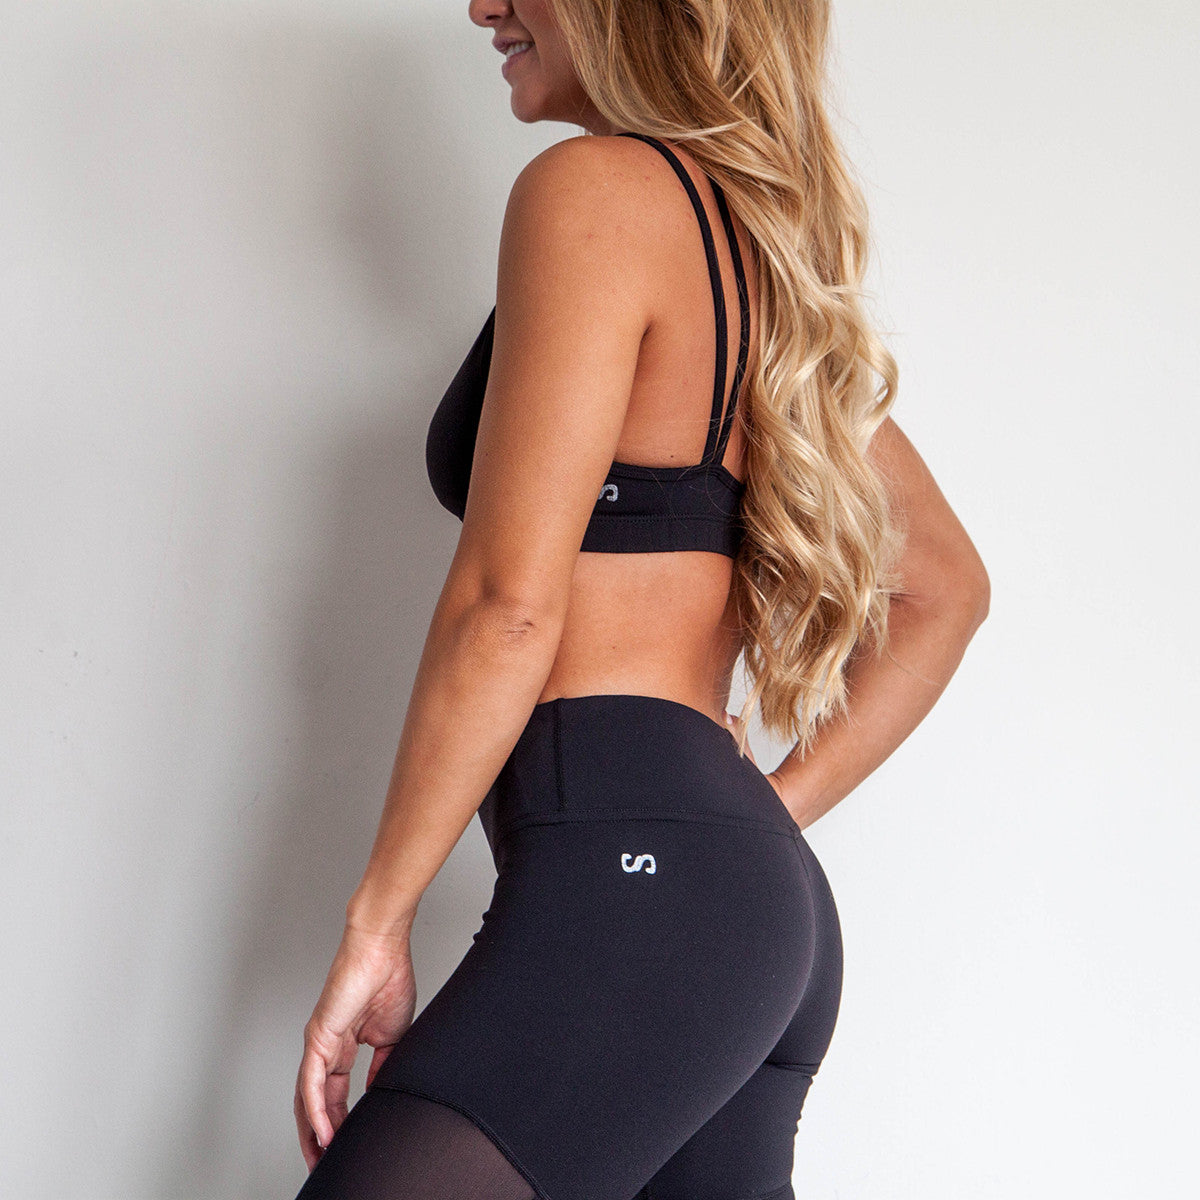 Legend Mesh Peak A Boo Sports Bra Jet Black